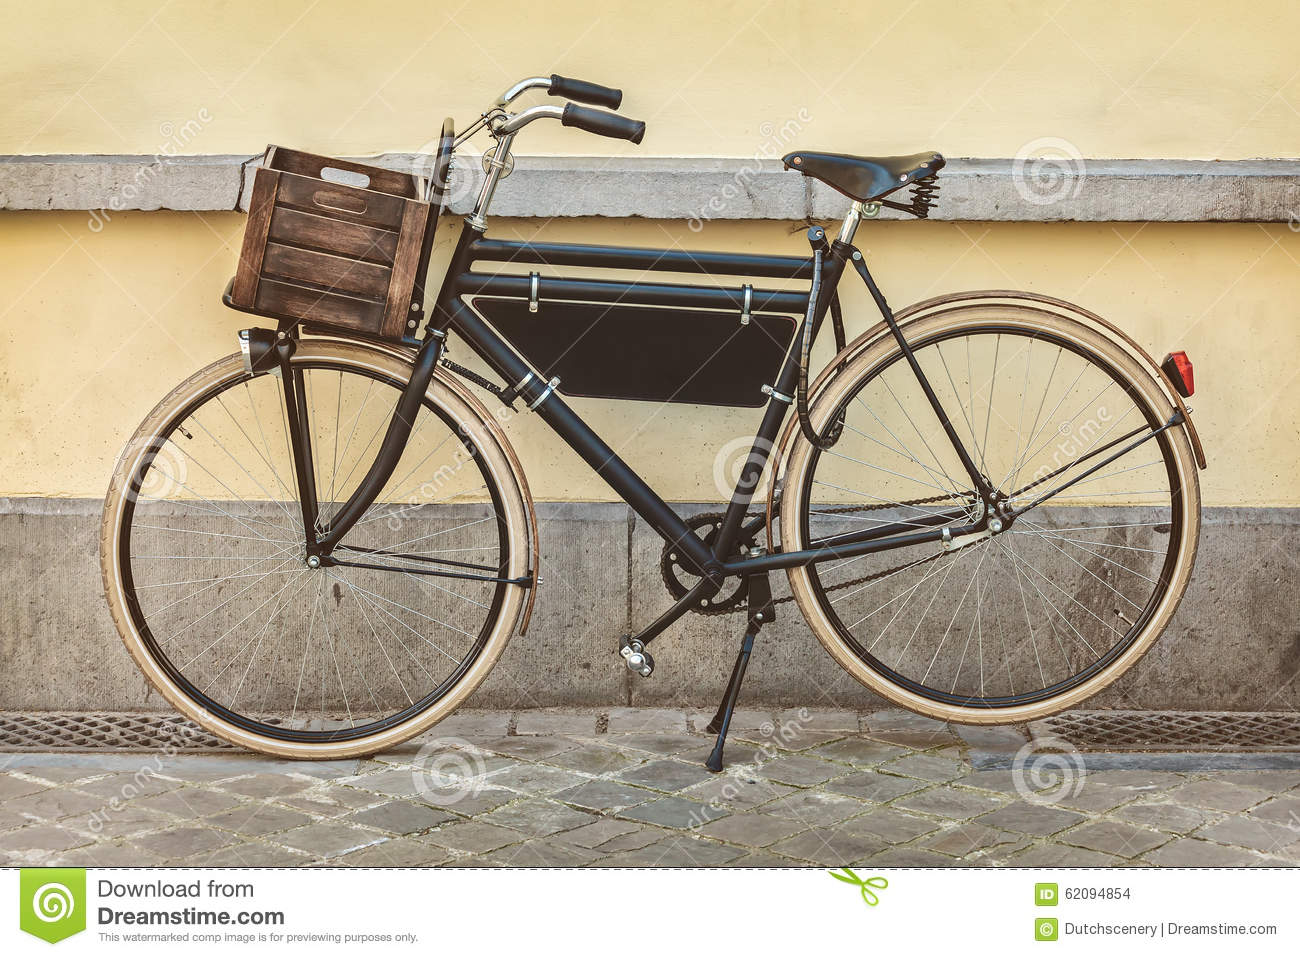 Vintage Bicycle With Wooden Crate Stock Photo - Image: 62094854